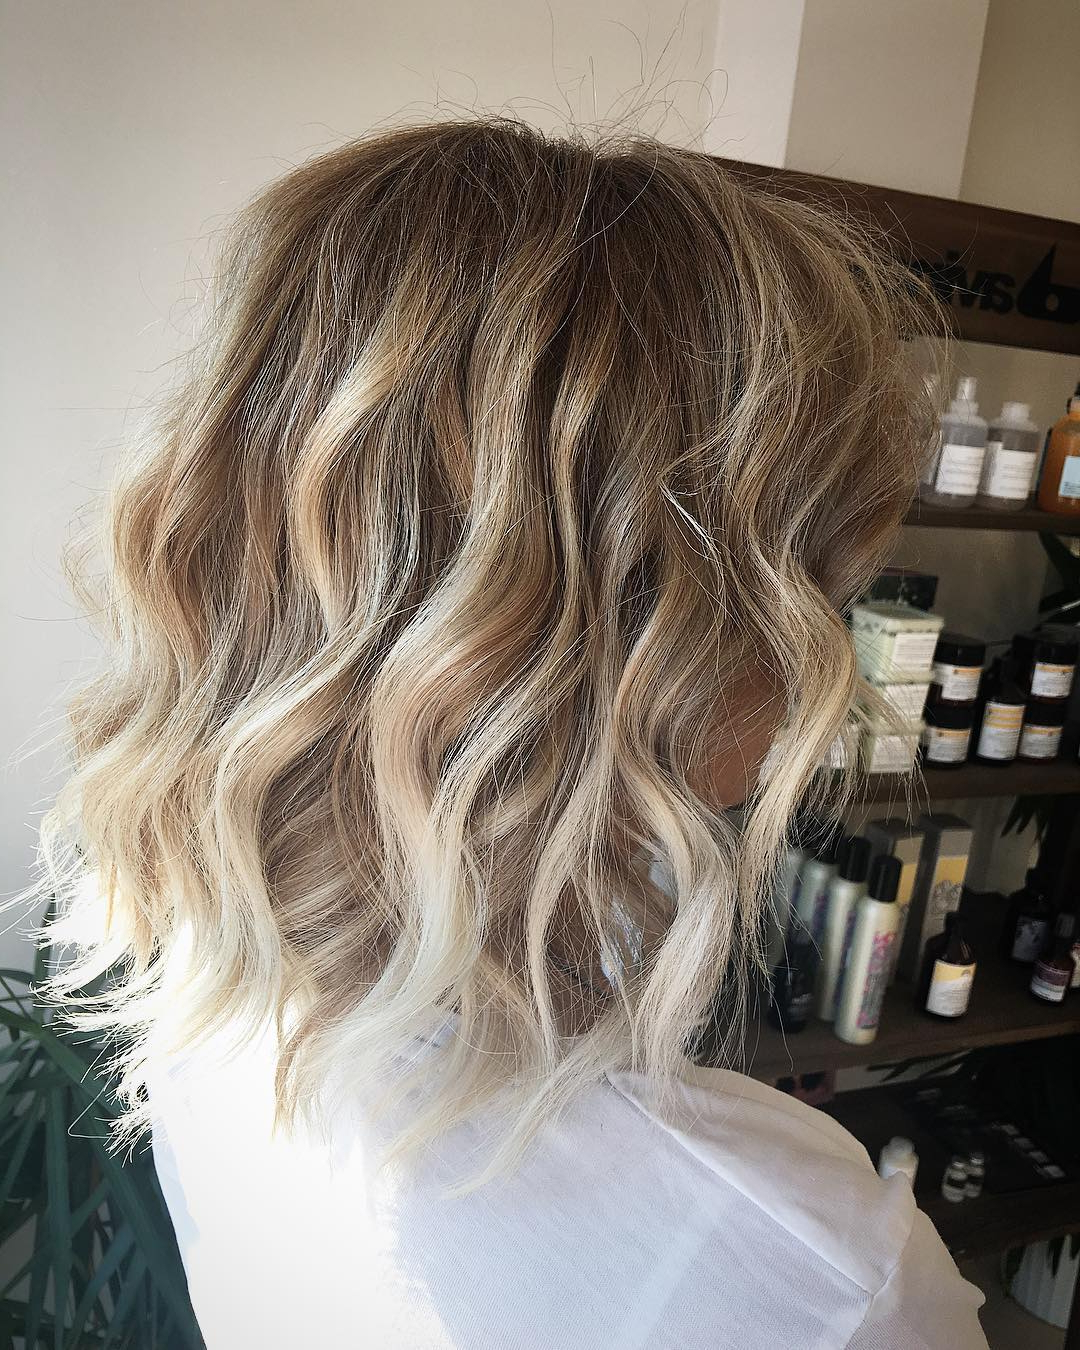 10 Blonde, Brown & Caramel Balayage Hair Color Ideas You In Blonde Balayage On Short Dark Hairstyles (View 3 of 20)